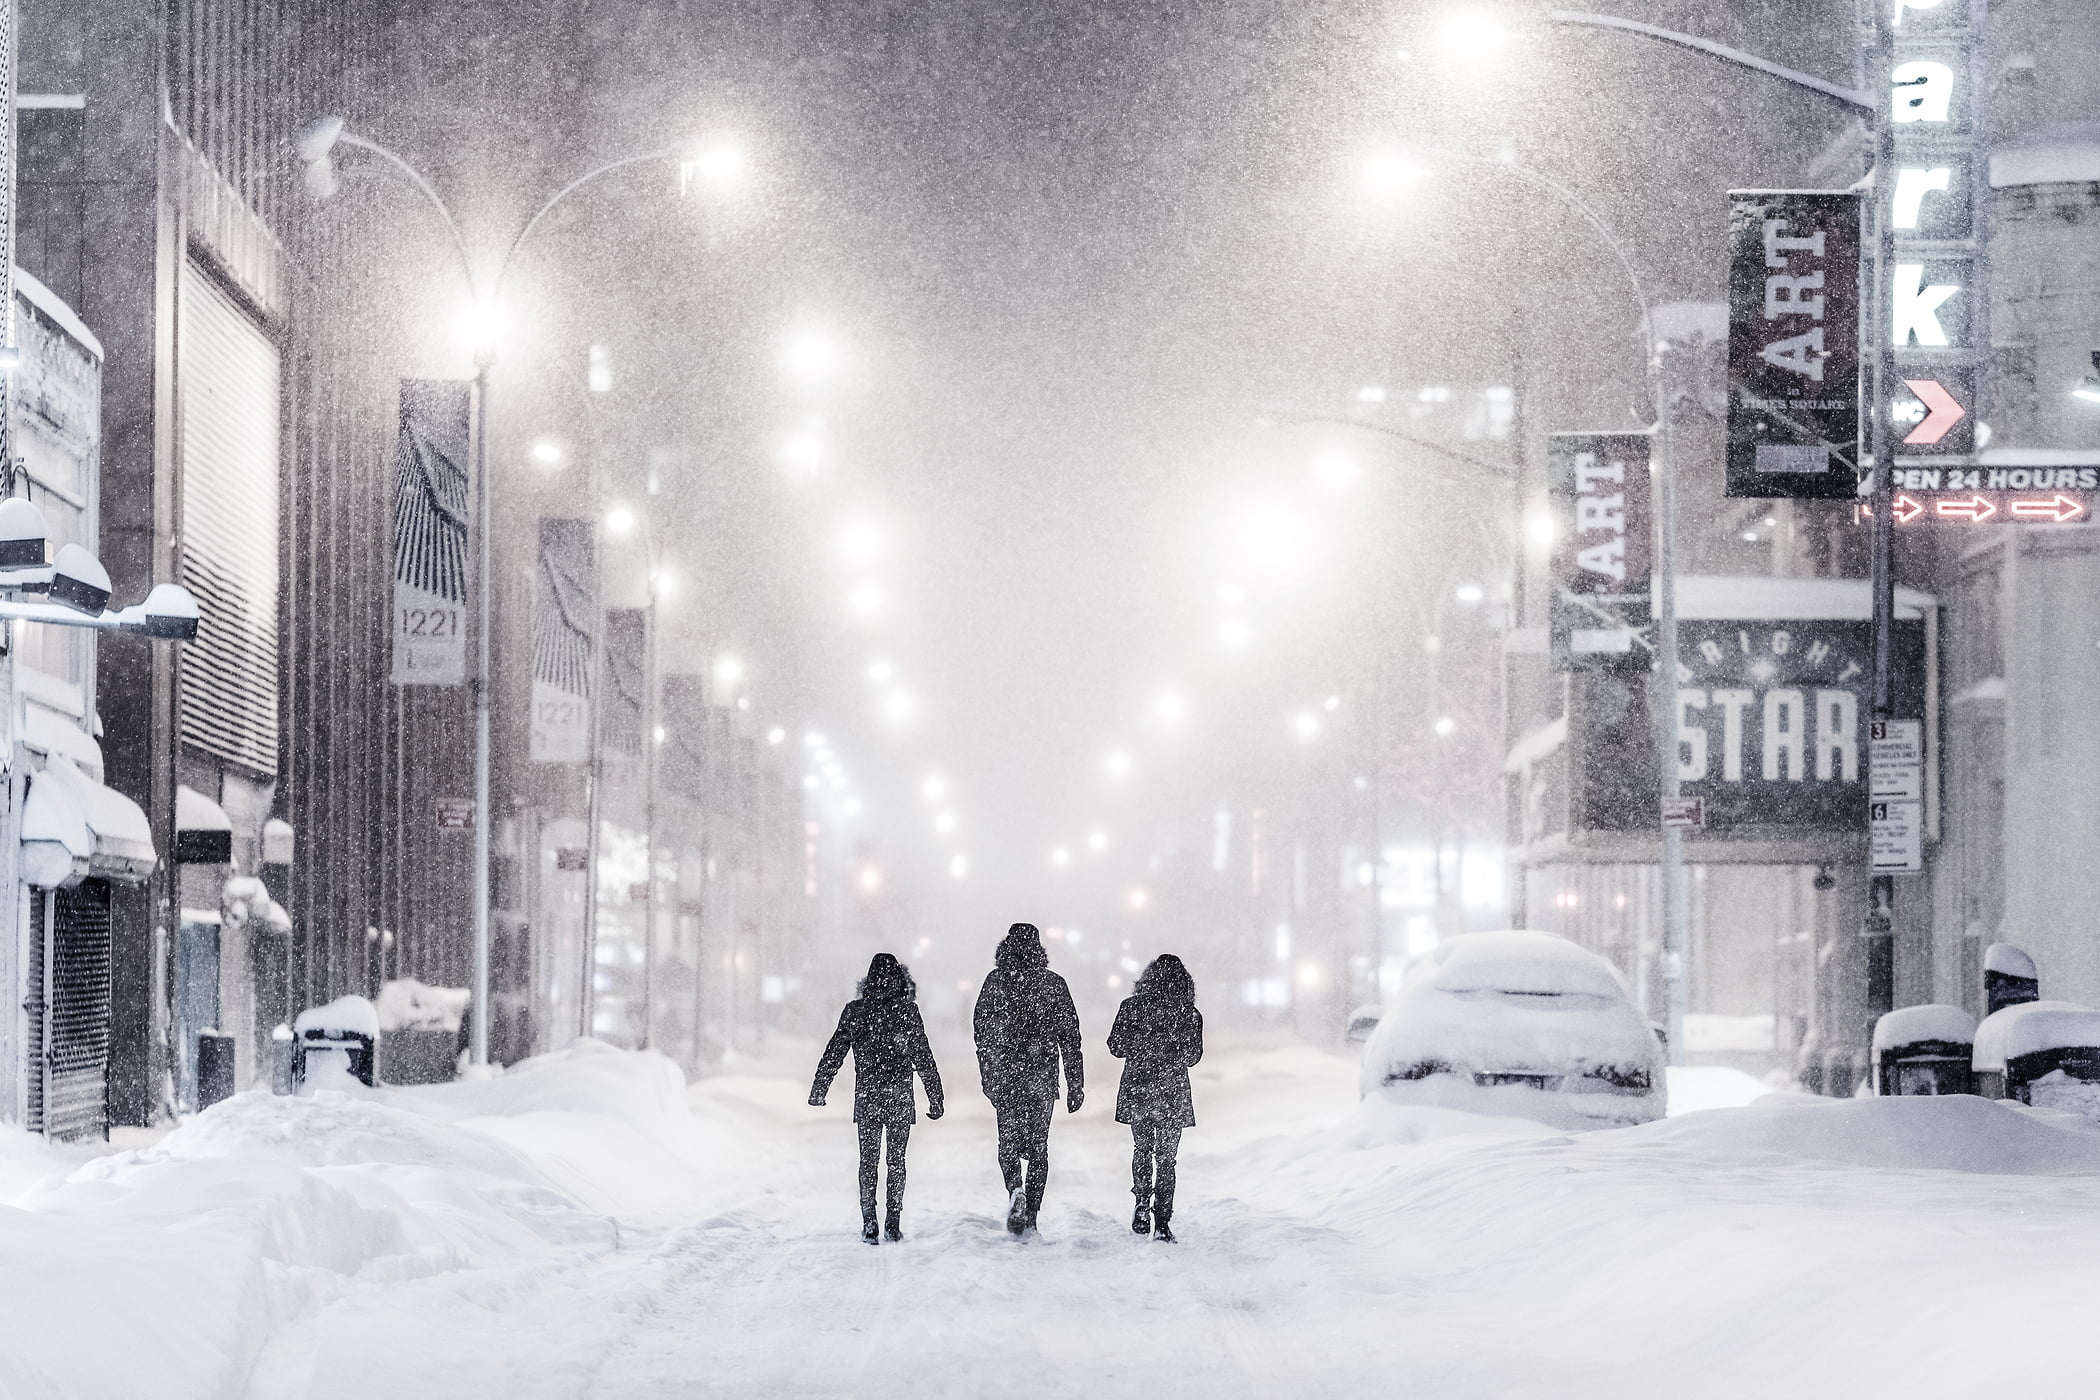 50 megapixels! A very high definition VAST photo of people walking down the street in Times Square during the 2016 winter snow blizzard at night in New York City; created by Dan Piech